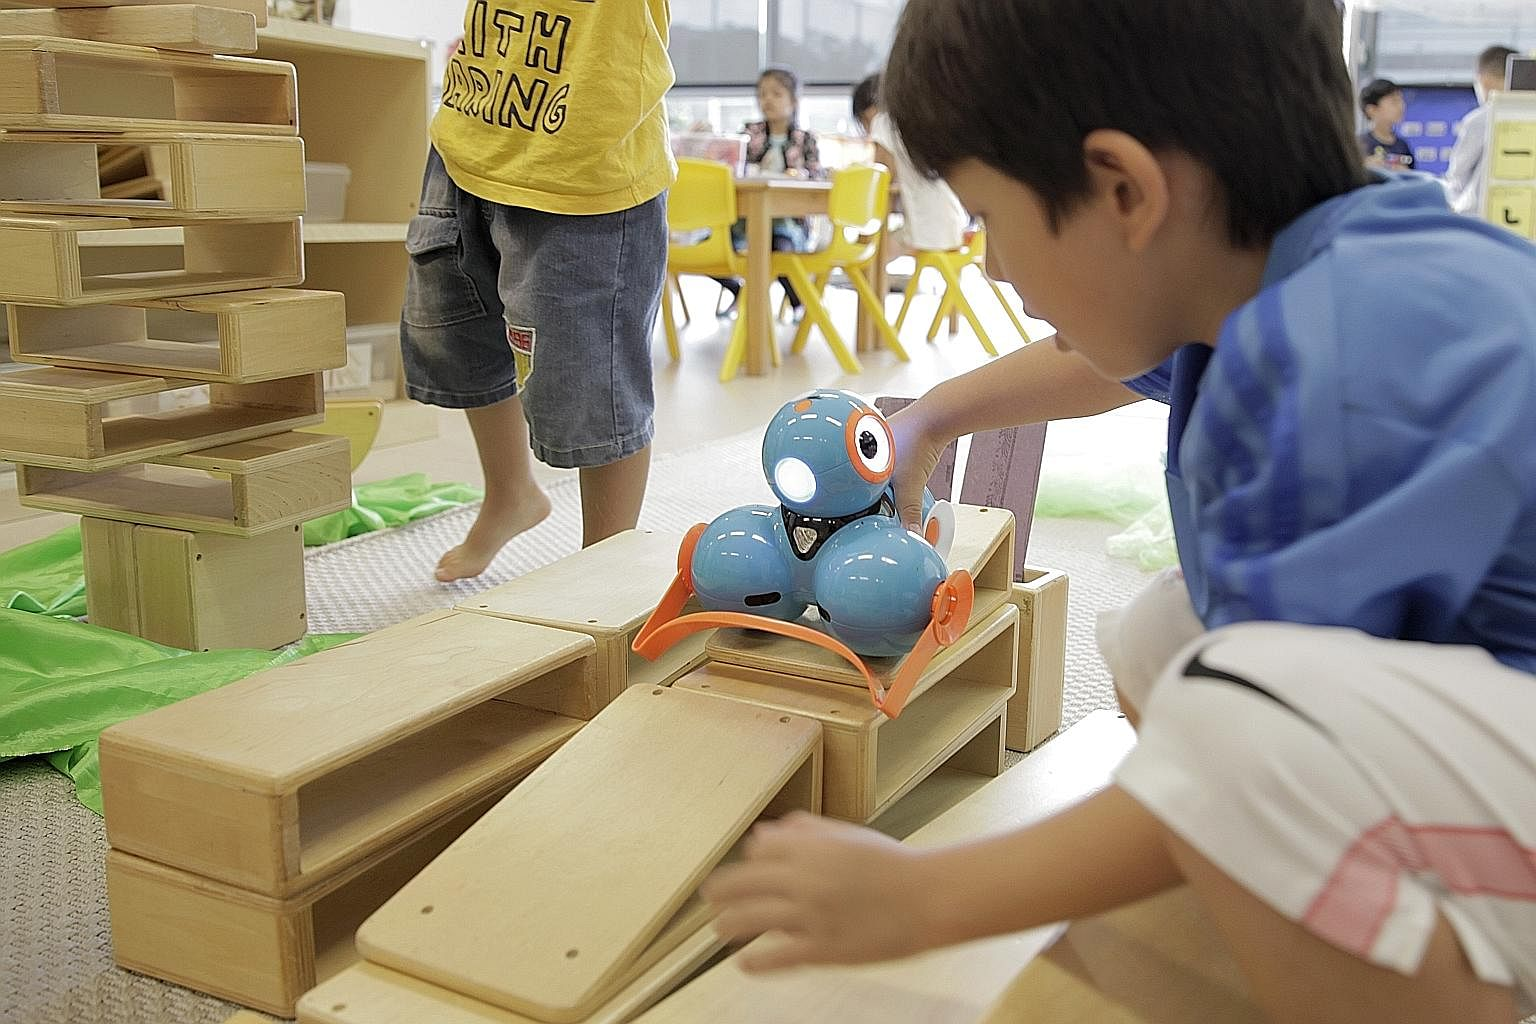 Play@TP adopts an inquiry-based approach so children can explore topics of their interest rather than fixed lessons.